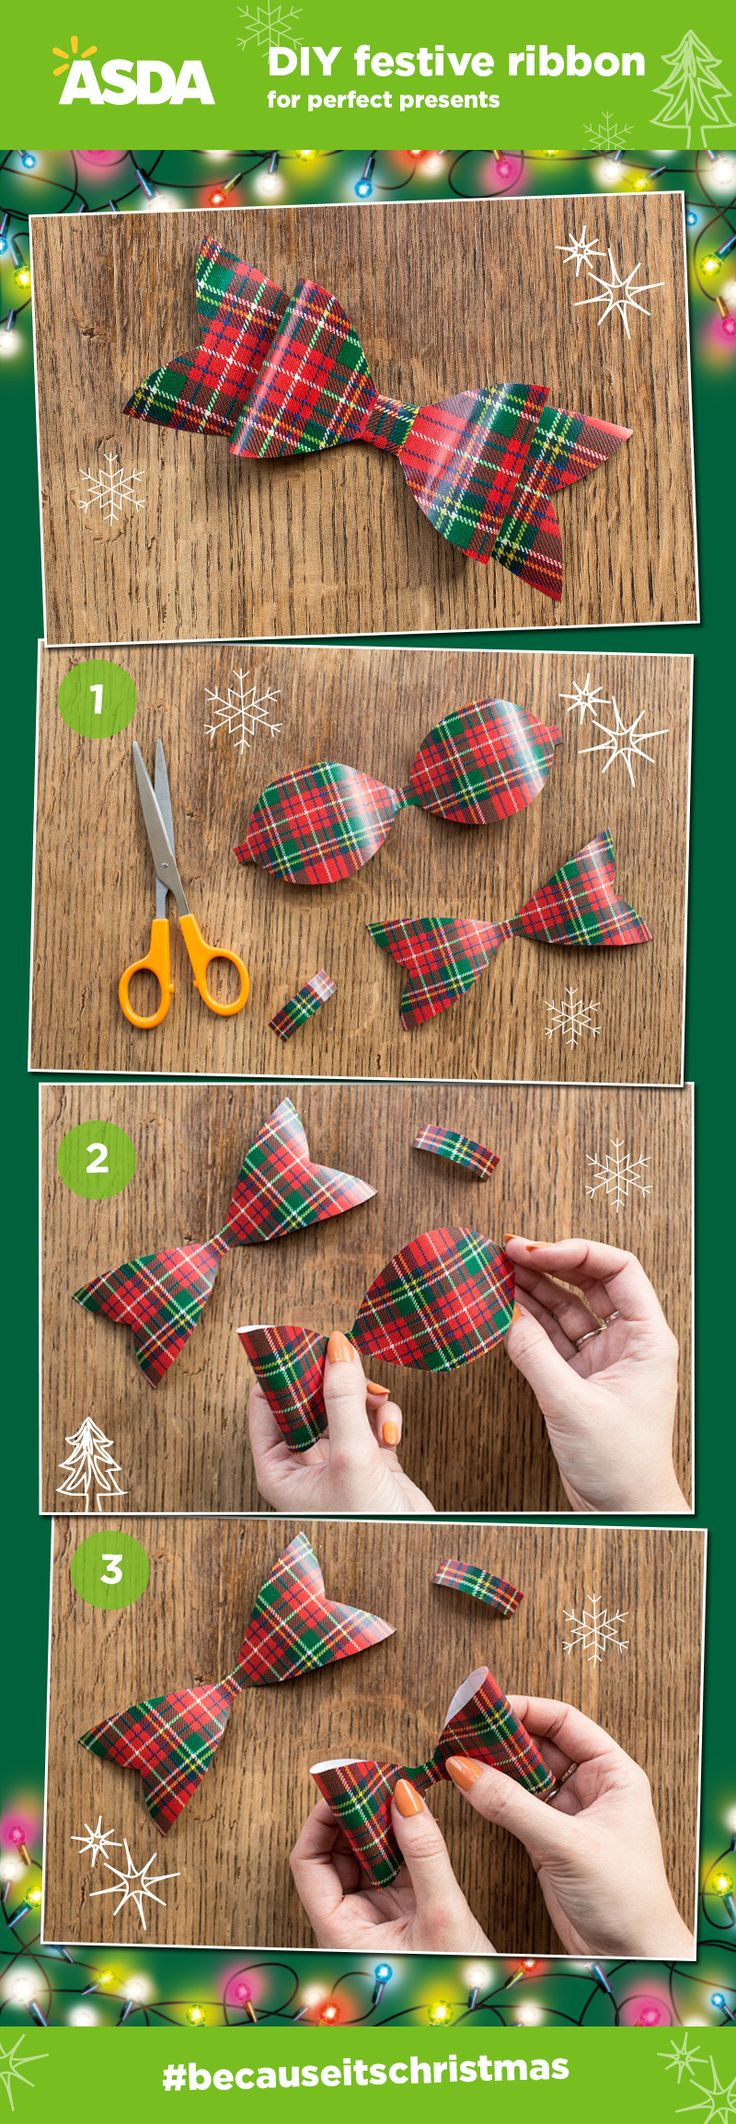 Festive ribbons for perfect presents